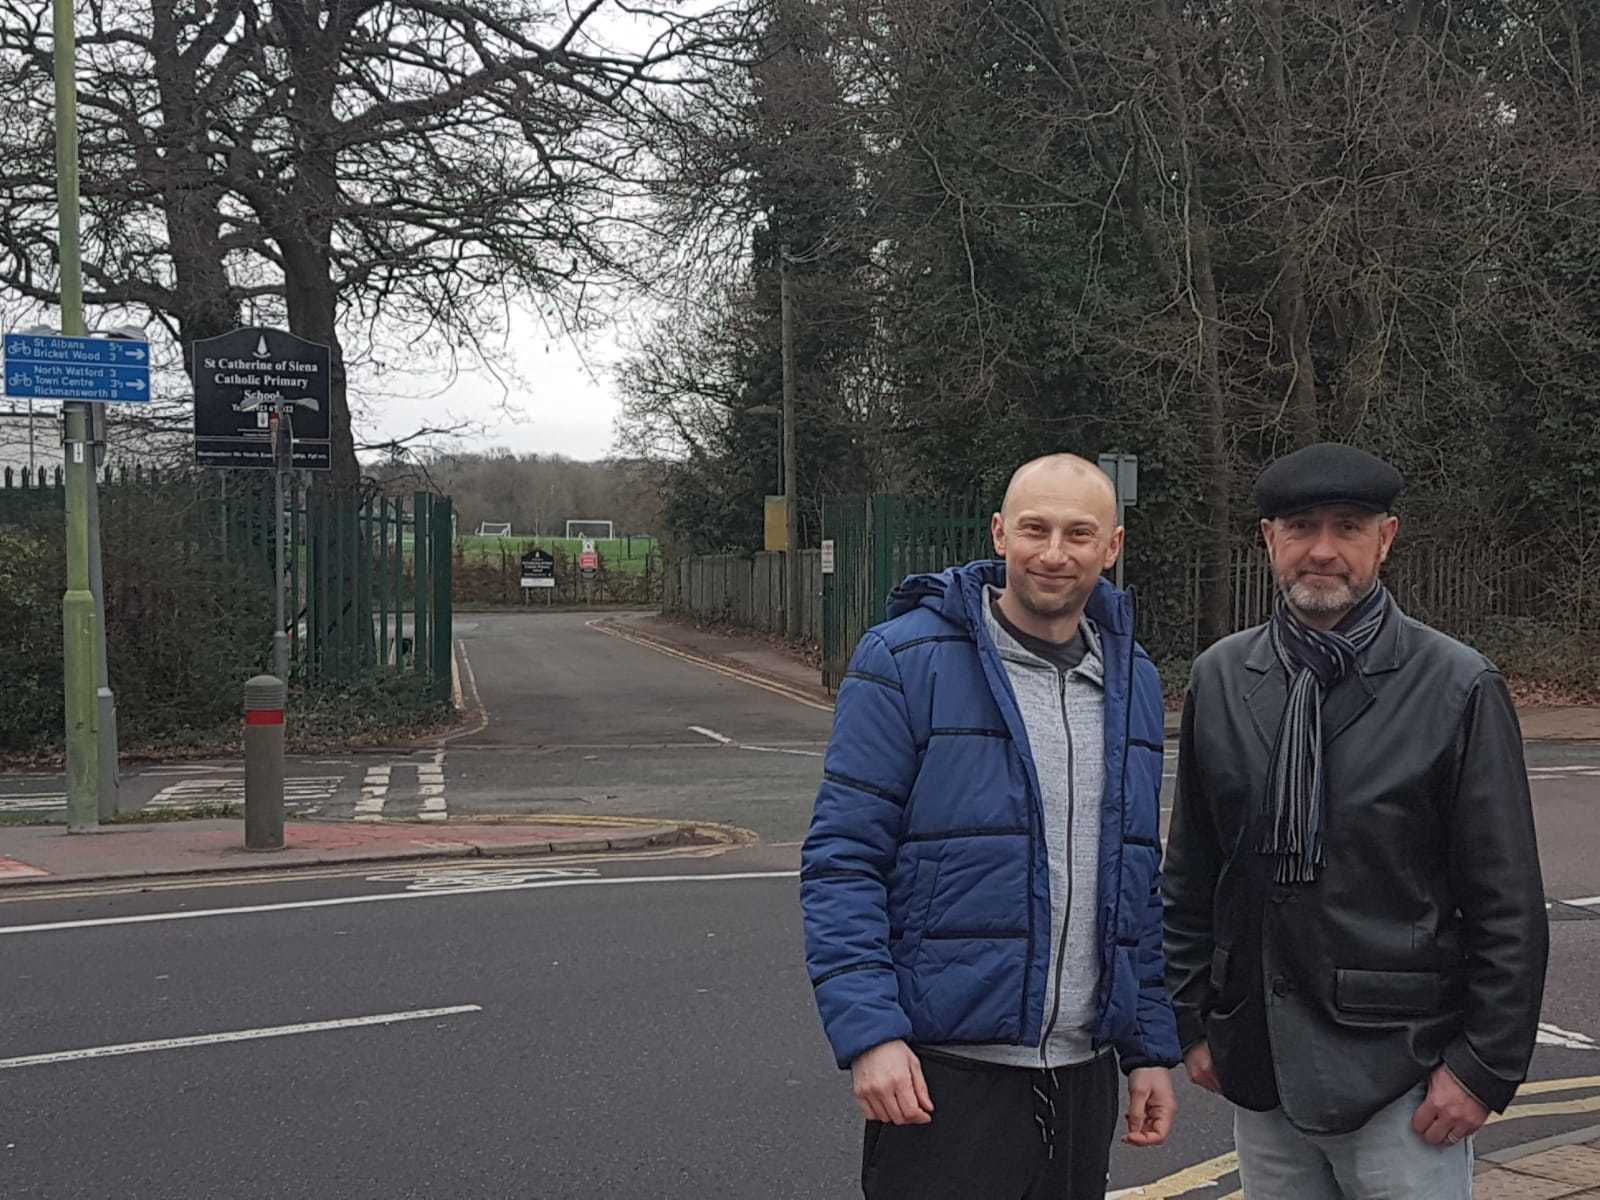 Richard Wenham (left) pictured with Cllr Williams in Horseshoe Lane